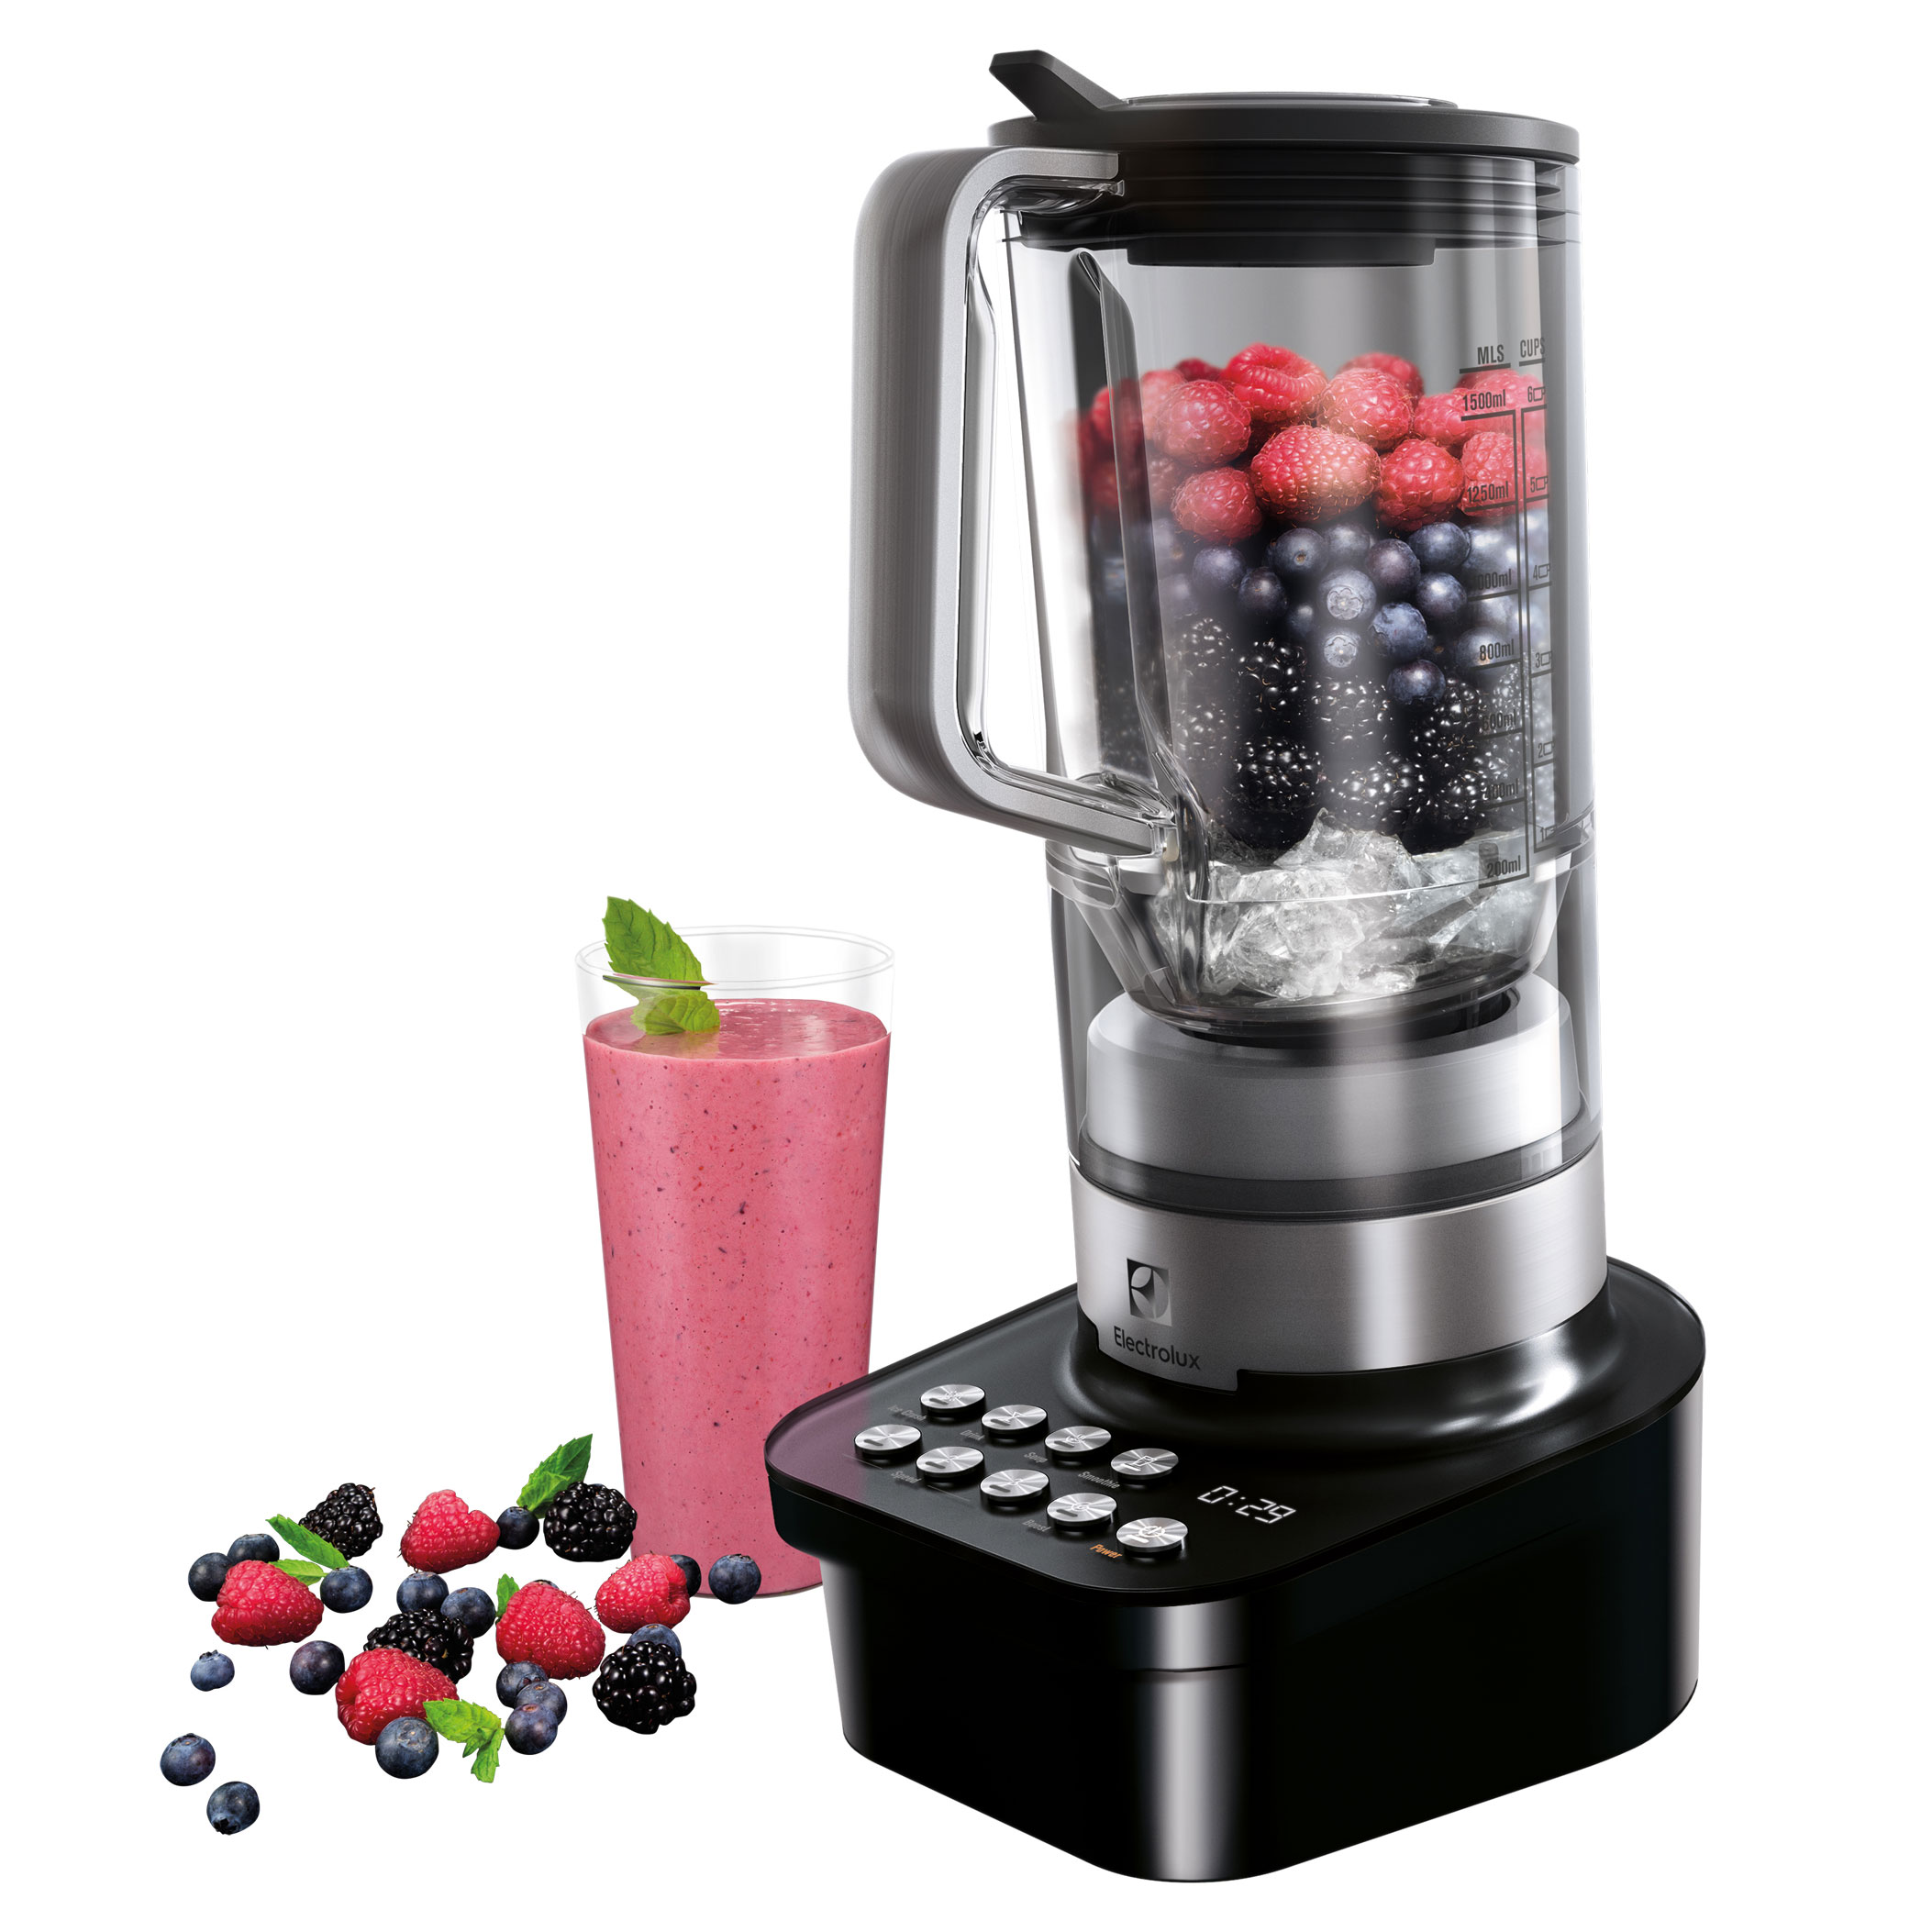 Electrolux blender - Masterpiece ESB9410 - Sort